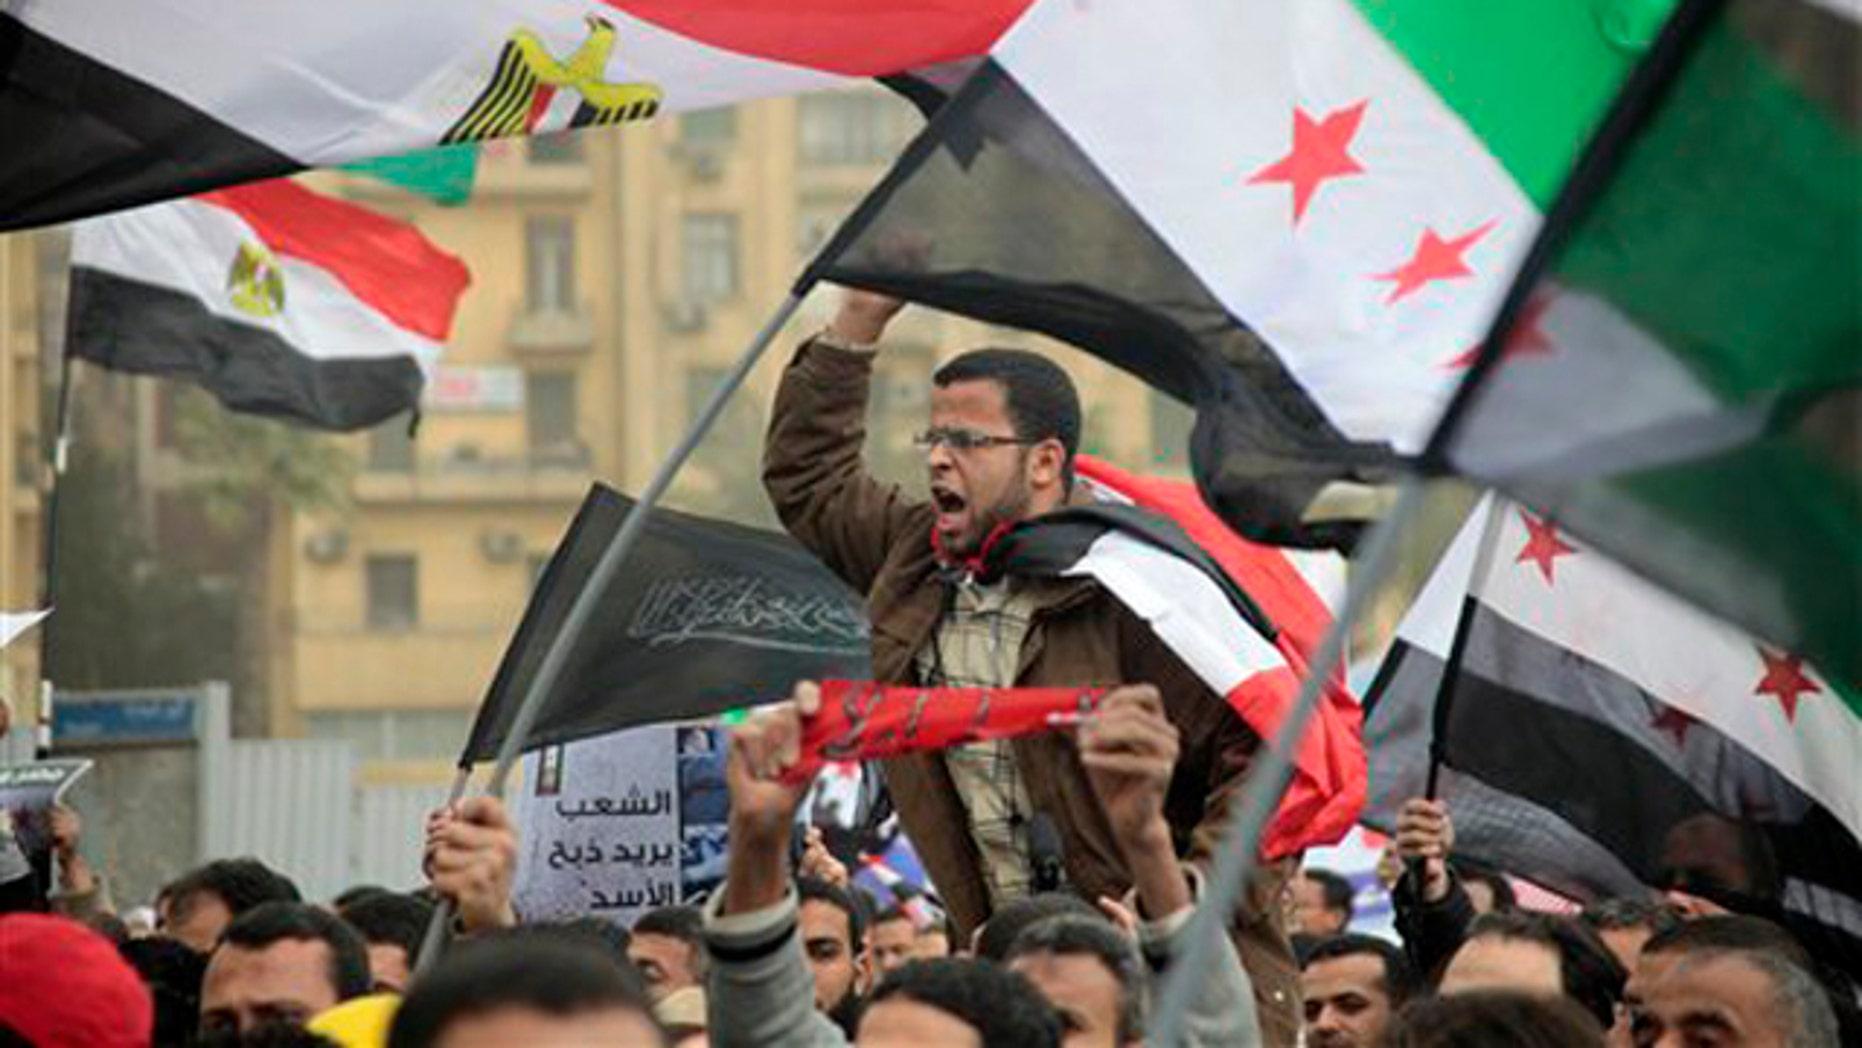 Feb. 17, 2012: Syrian and Egyptian protesters shout slogans during a demonstration against Syrian President Bashar al-Assad in front of the Syrian embassy in Cairo, Egypt.